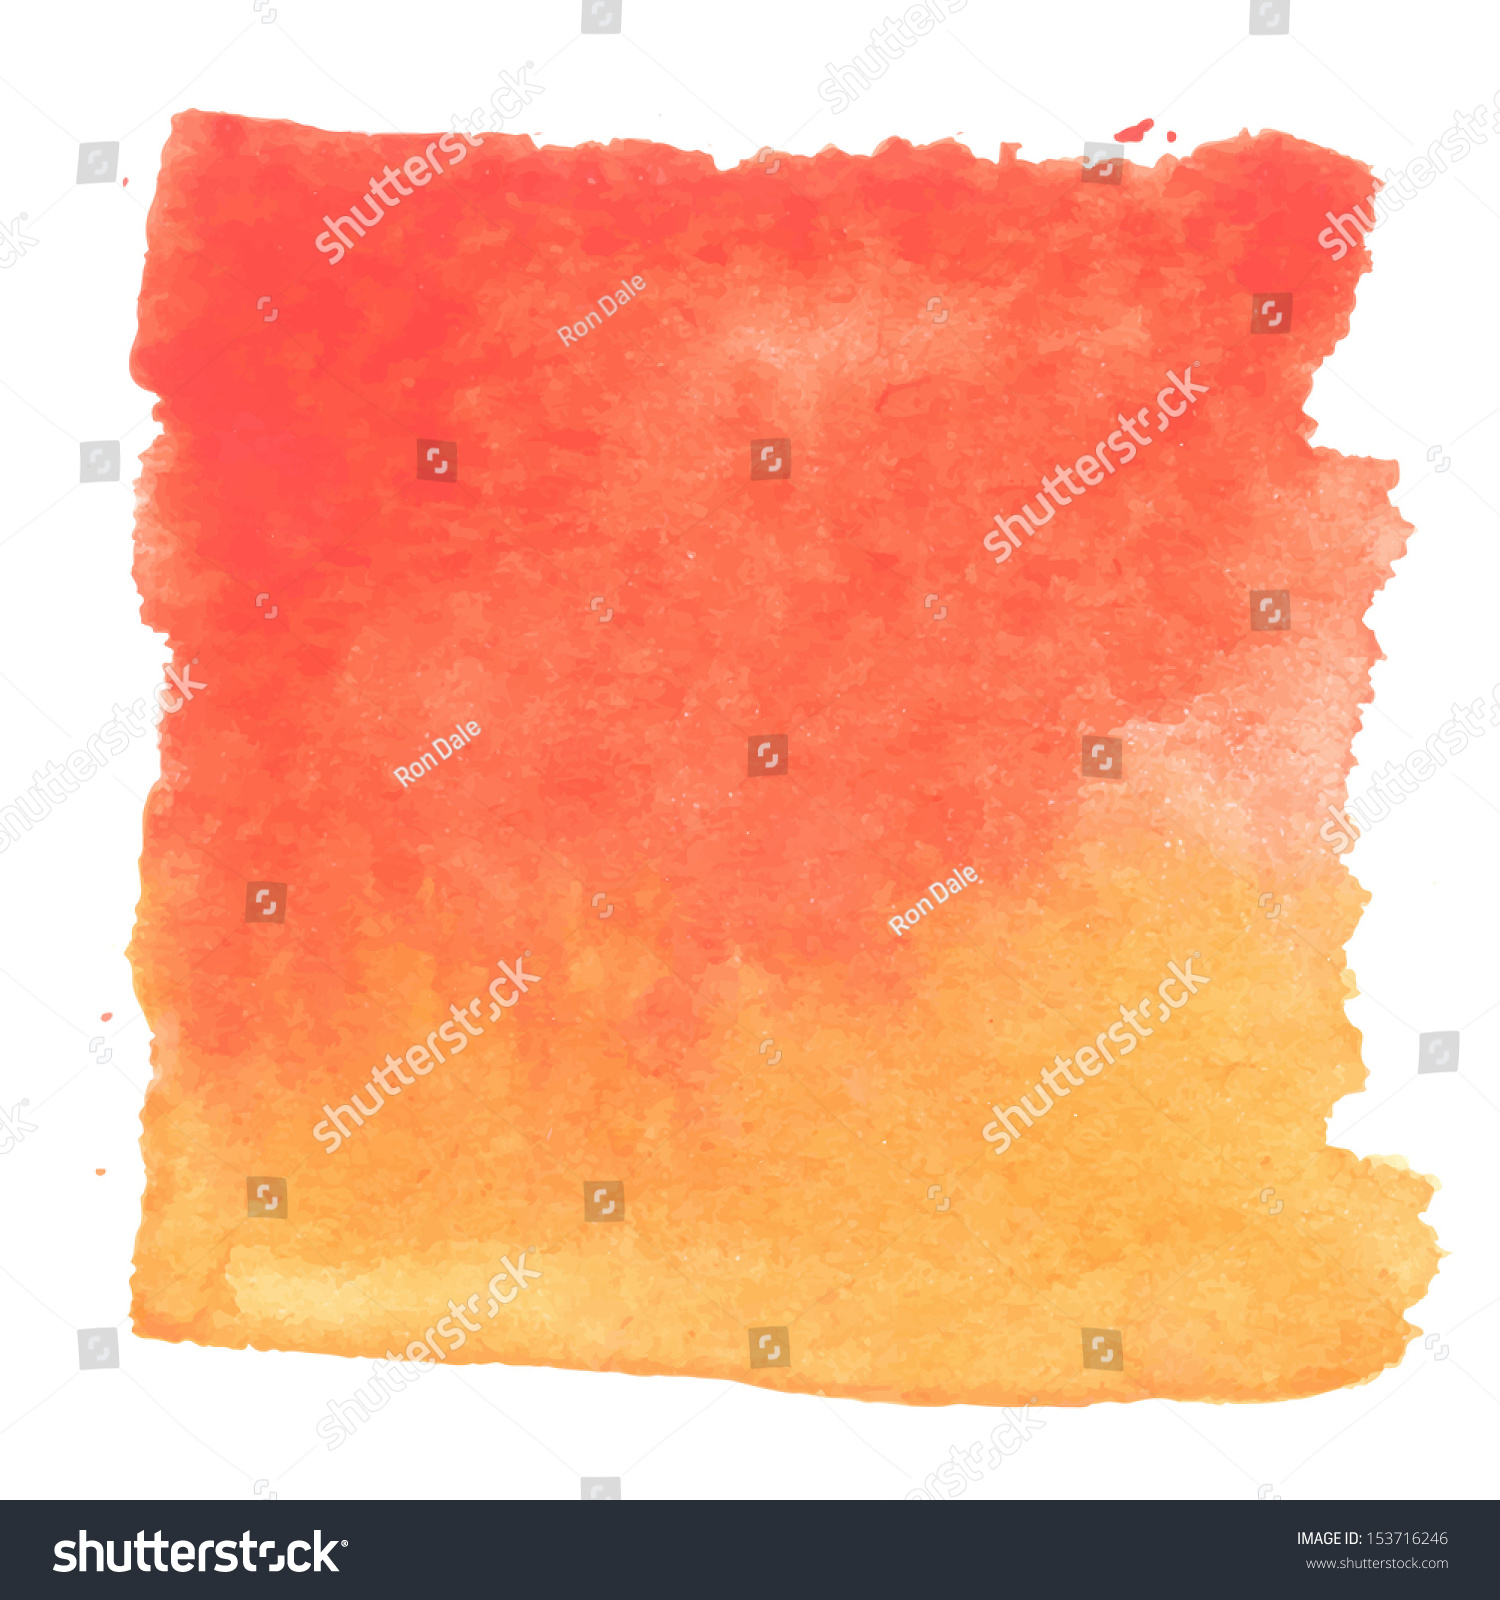 Abstract Watercolor Art Hand Paint Isolated On White Background. Watercolor  Stains. Square Red